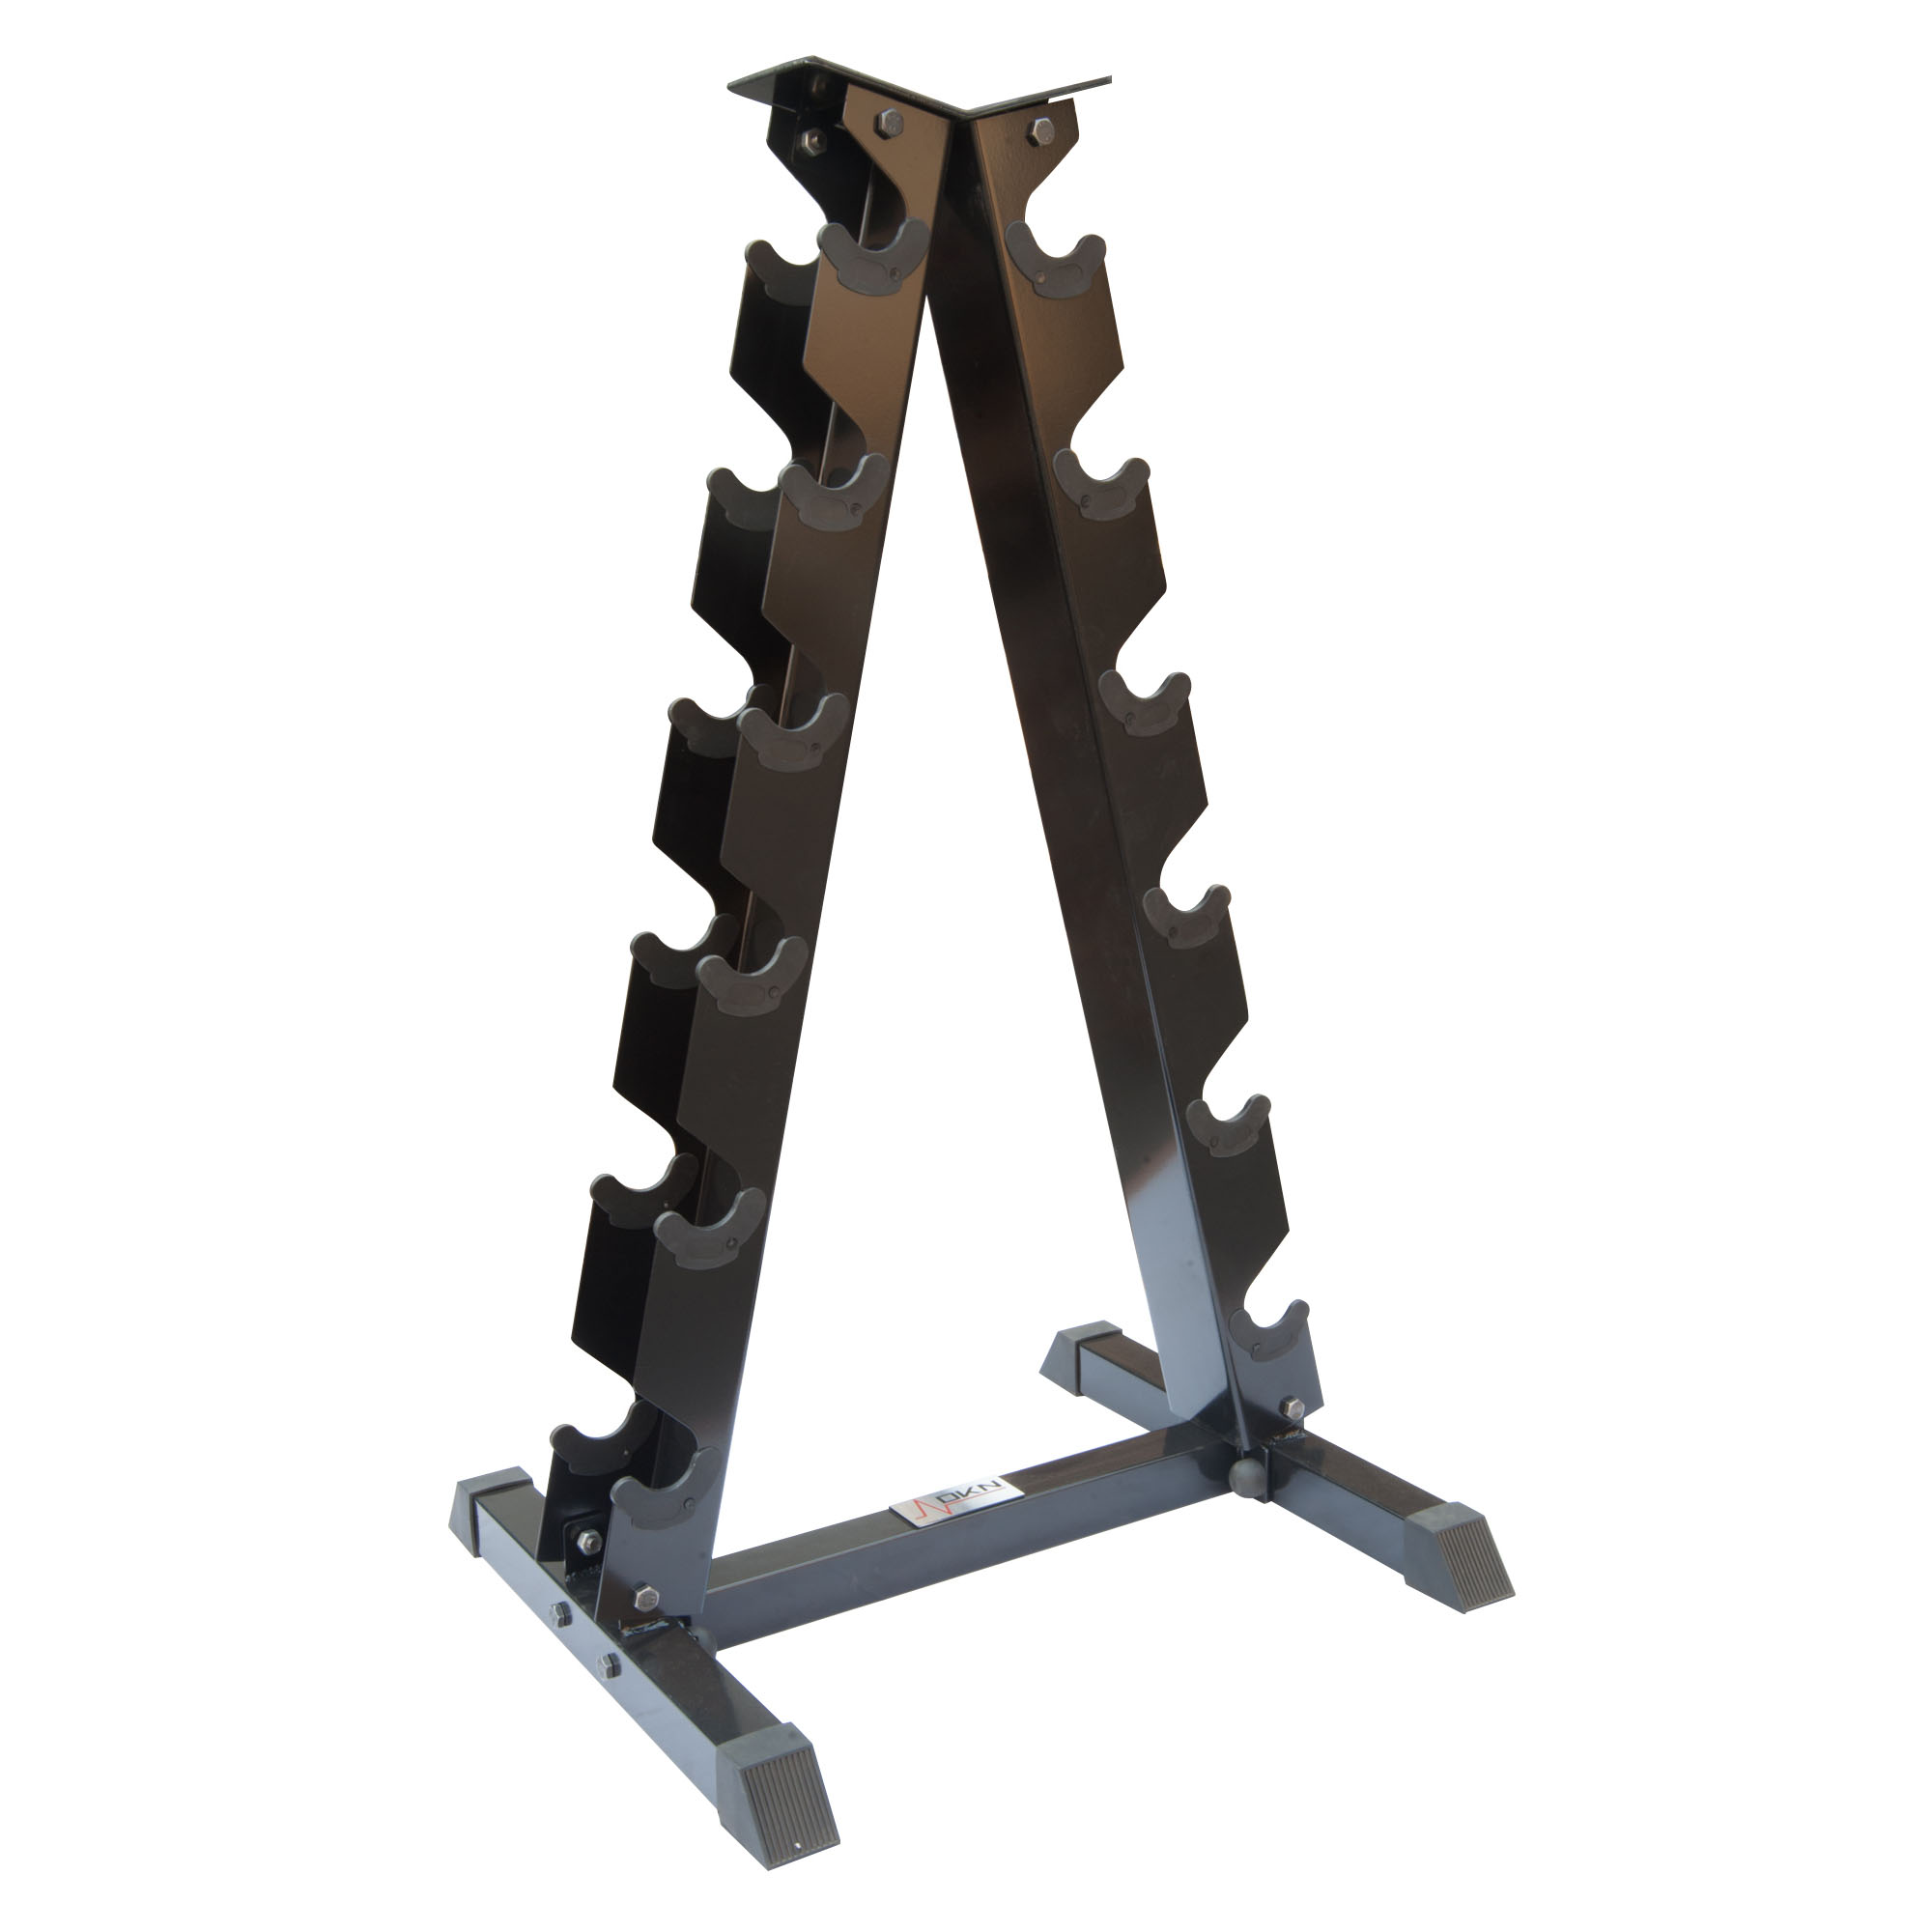 Buy Cheap Dumbbell Rack Compare Sports Prices For Best